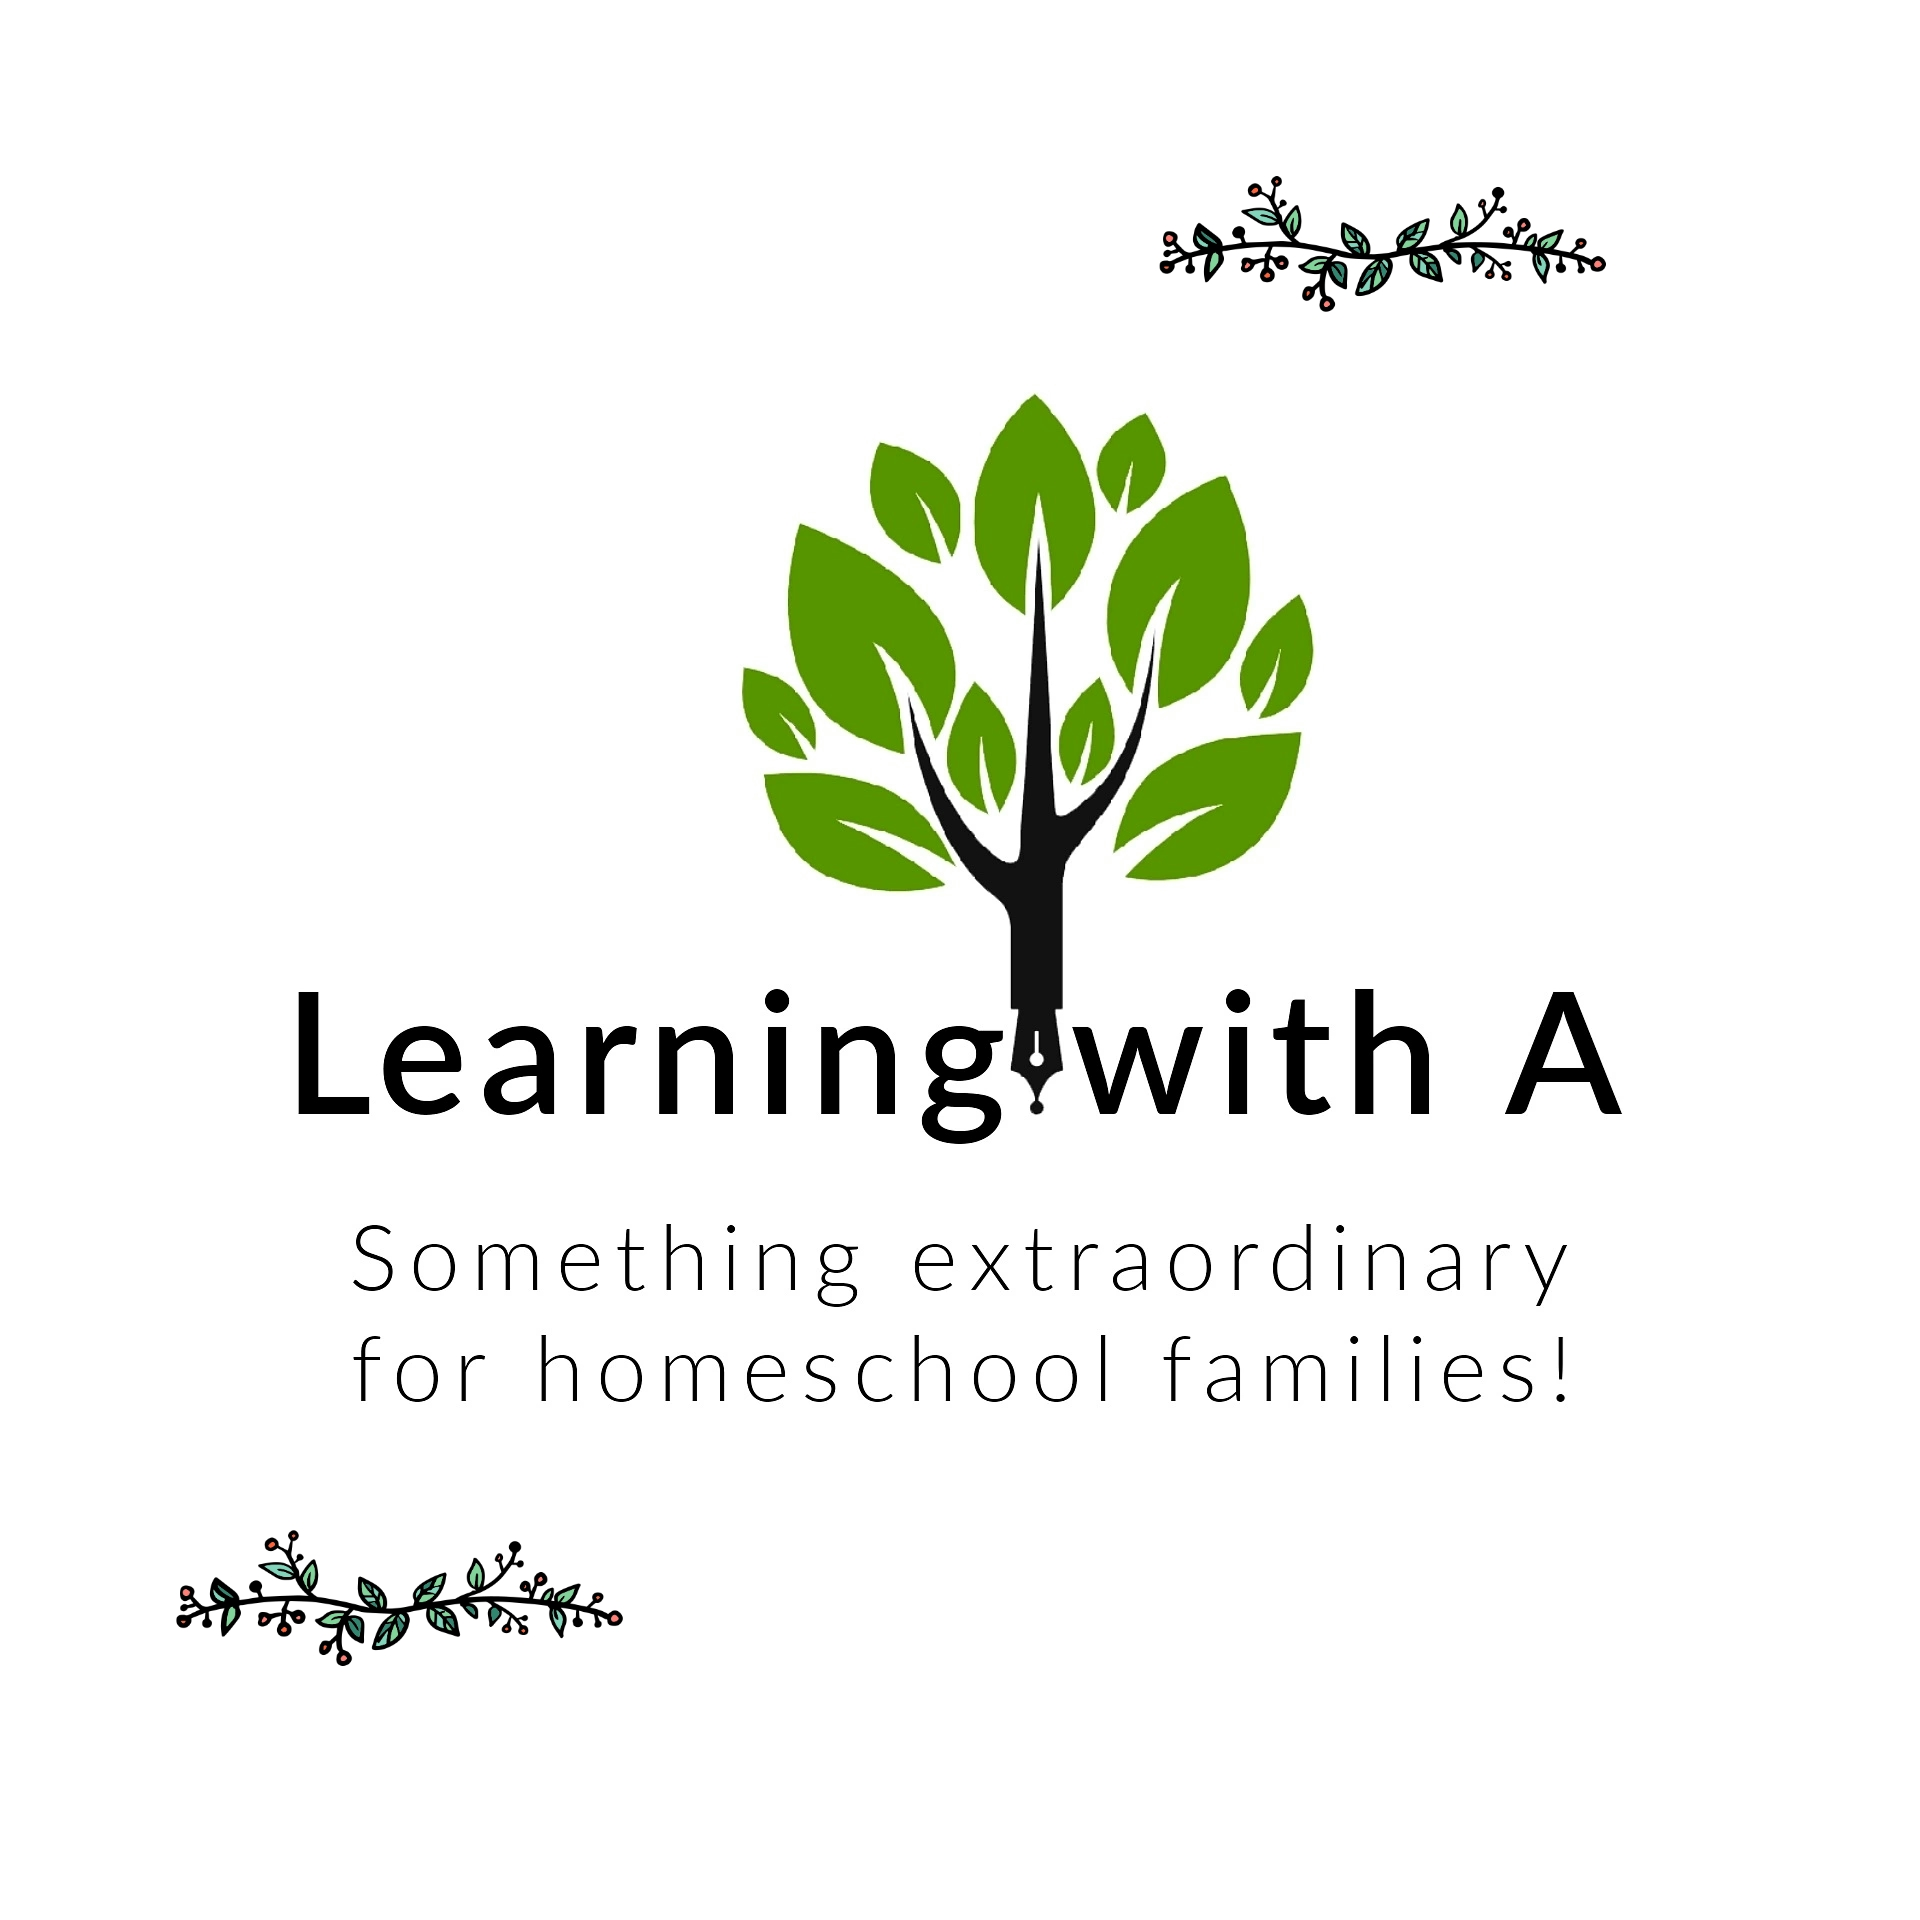 Learning with A logo